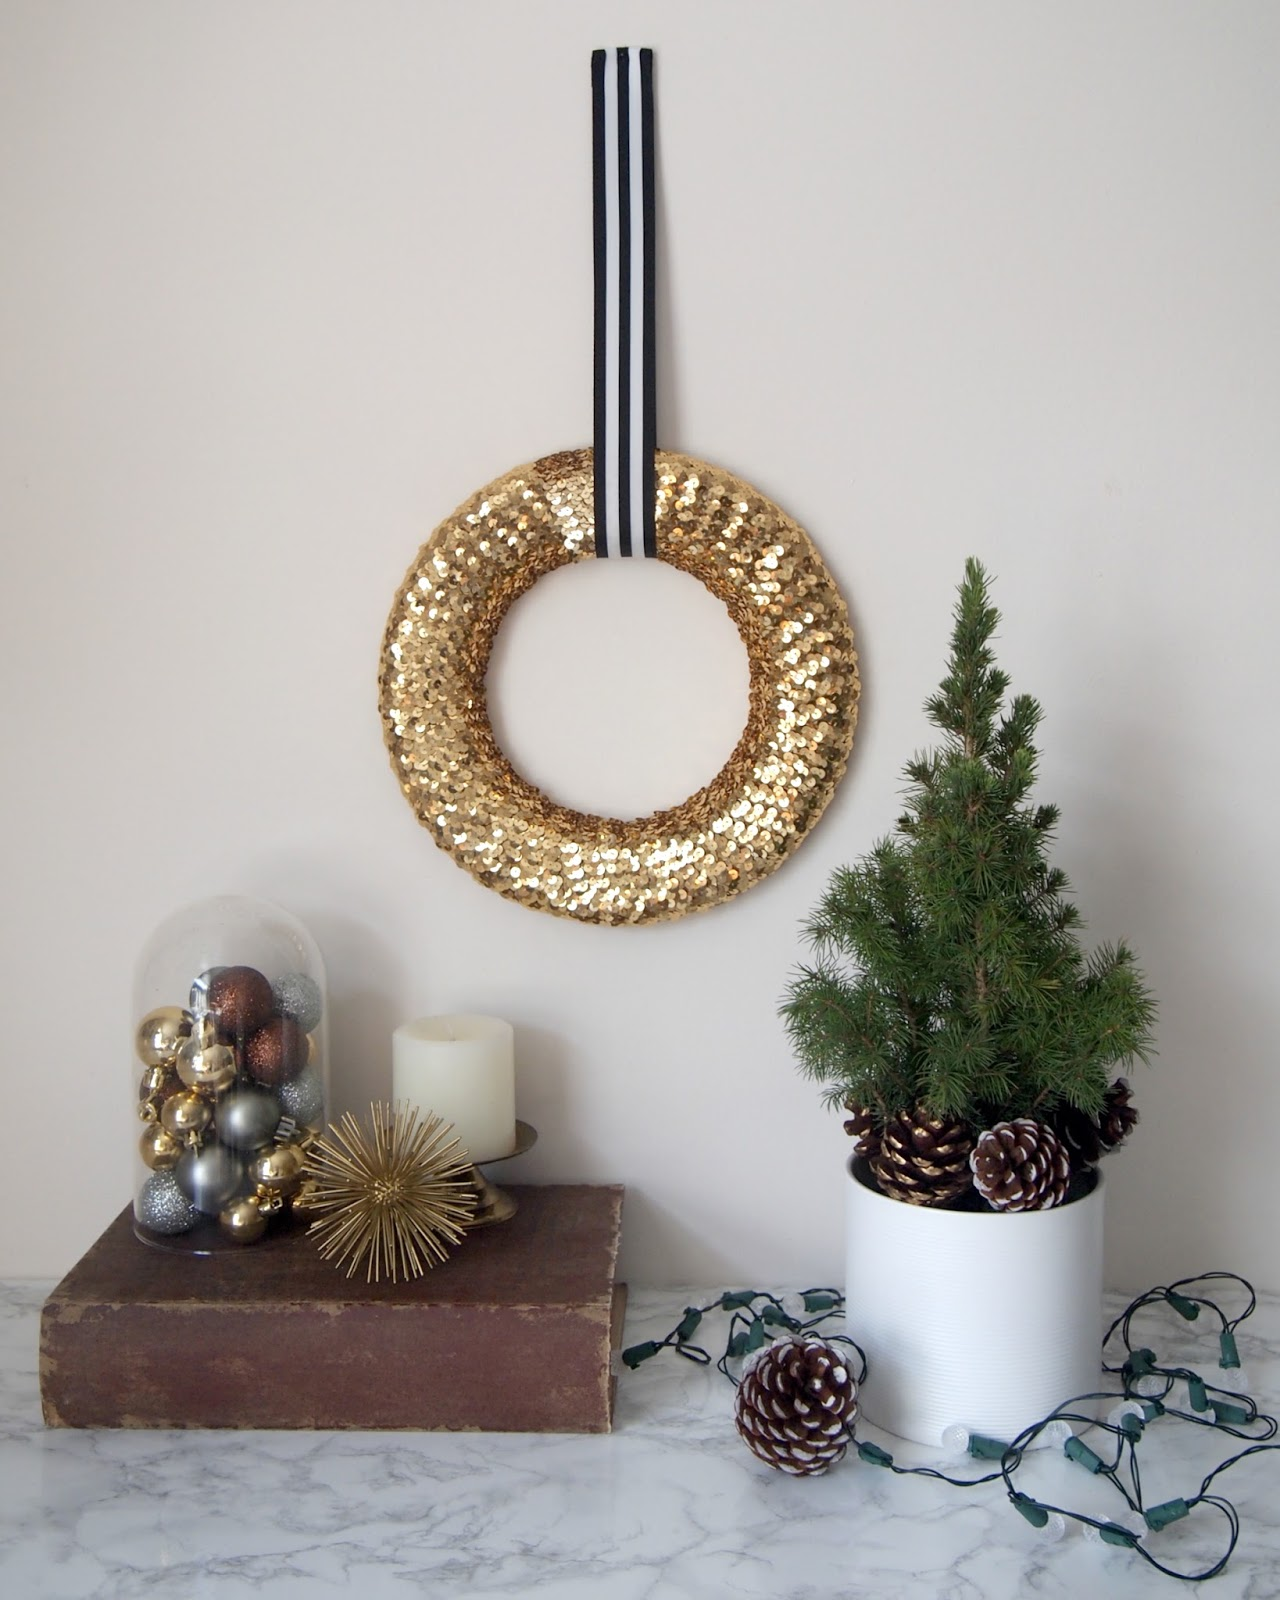 DIY Sequin Wreath Project